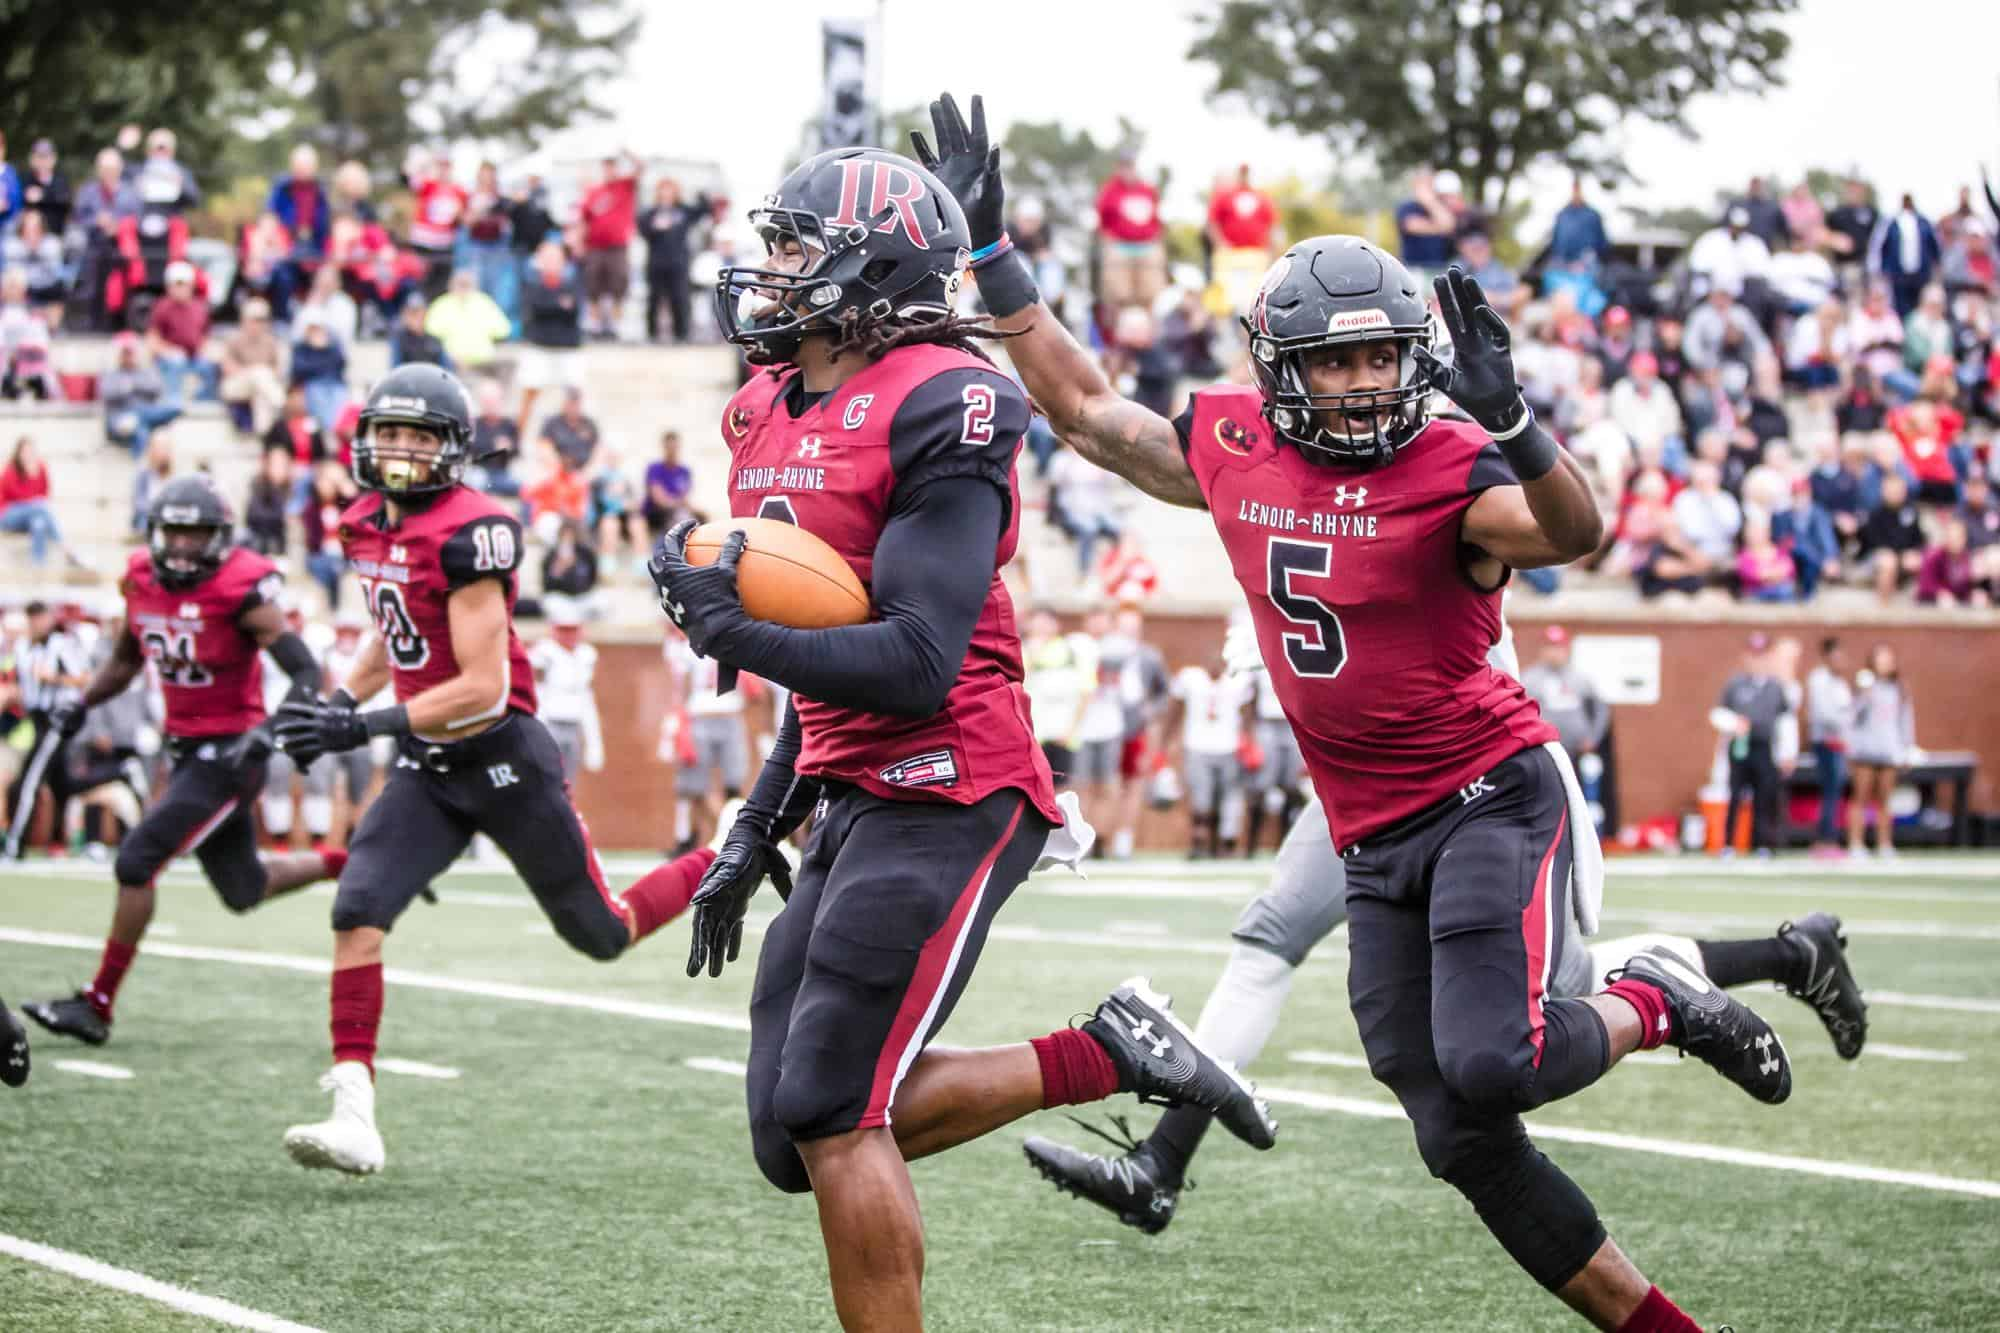 Lenoir-Rhyne safety Kyle Dugger becoming an elite draft prospect